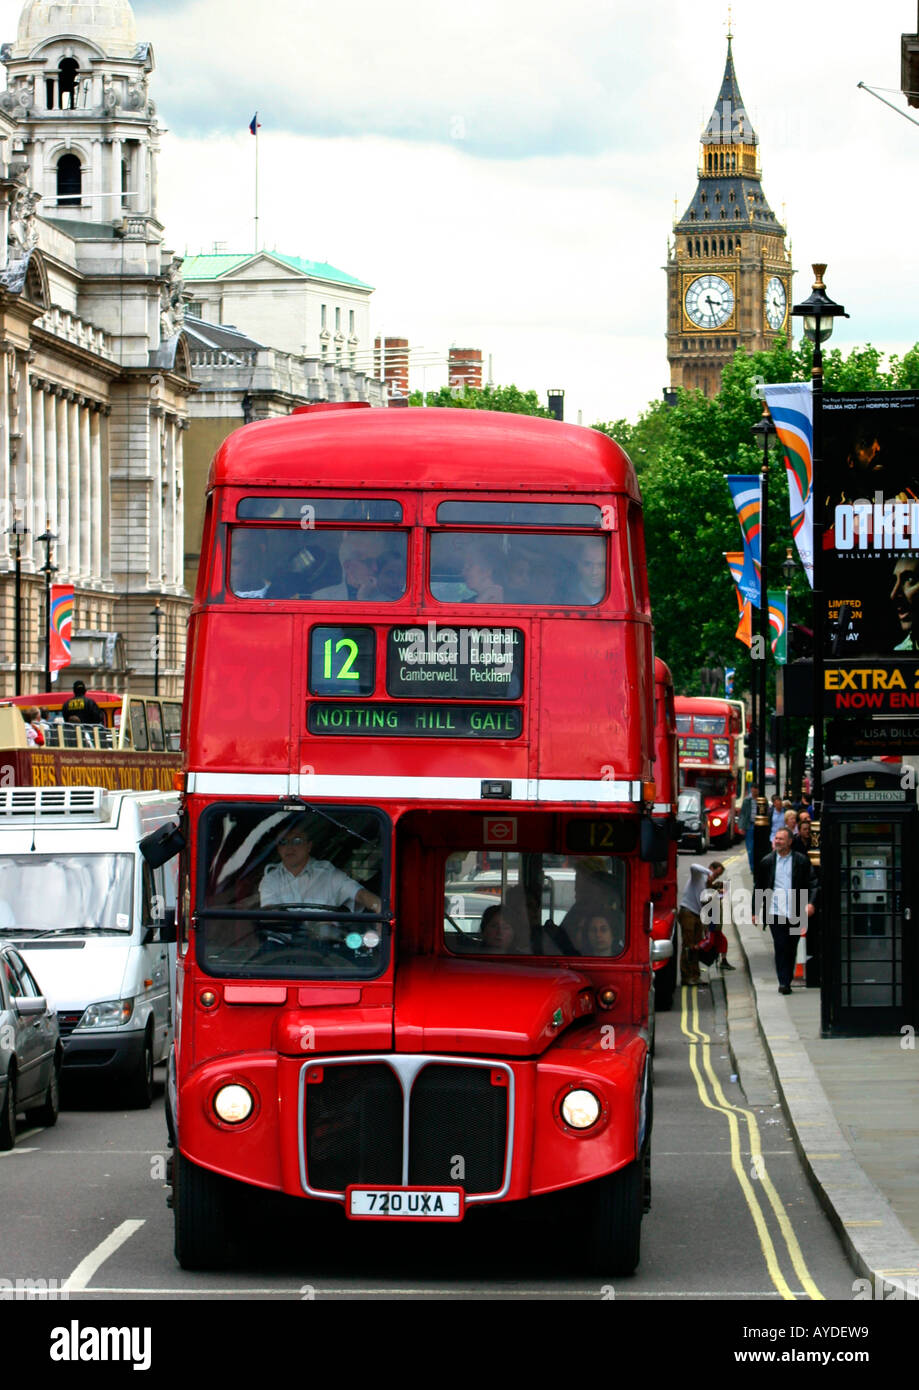 red routemaster bus in whitehall, london, england - Stock Image